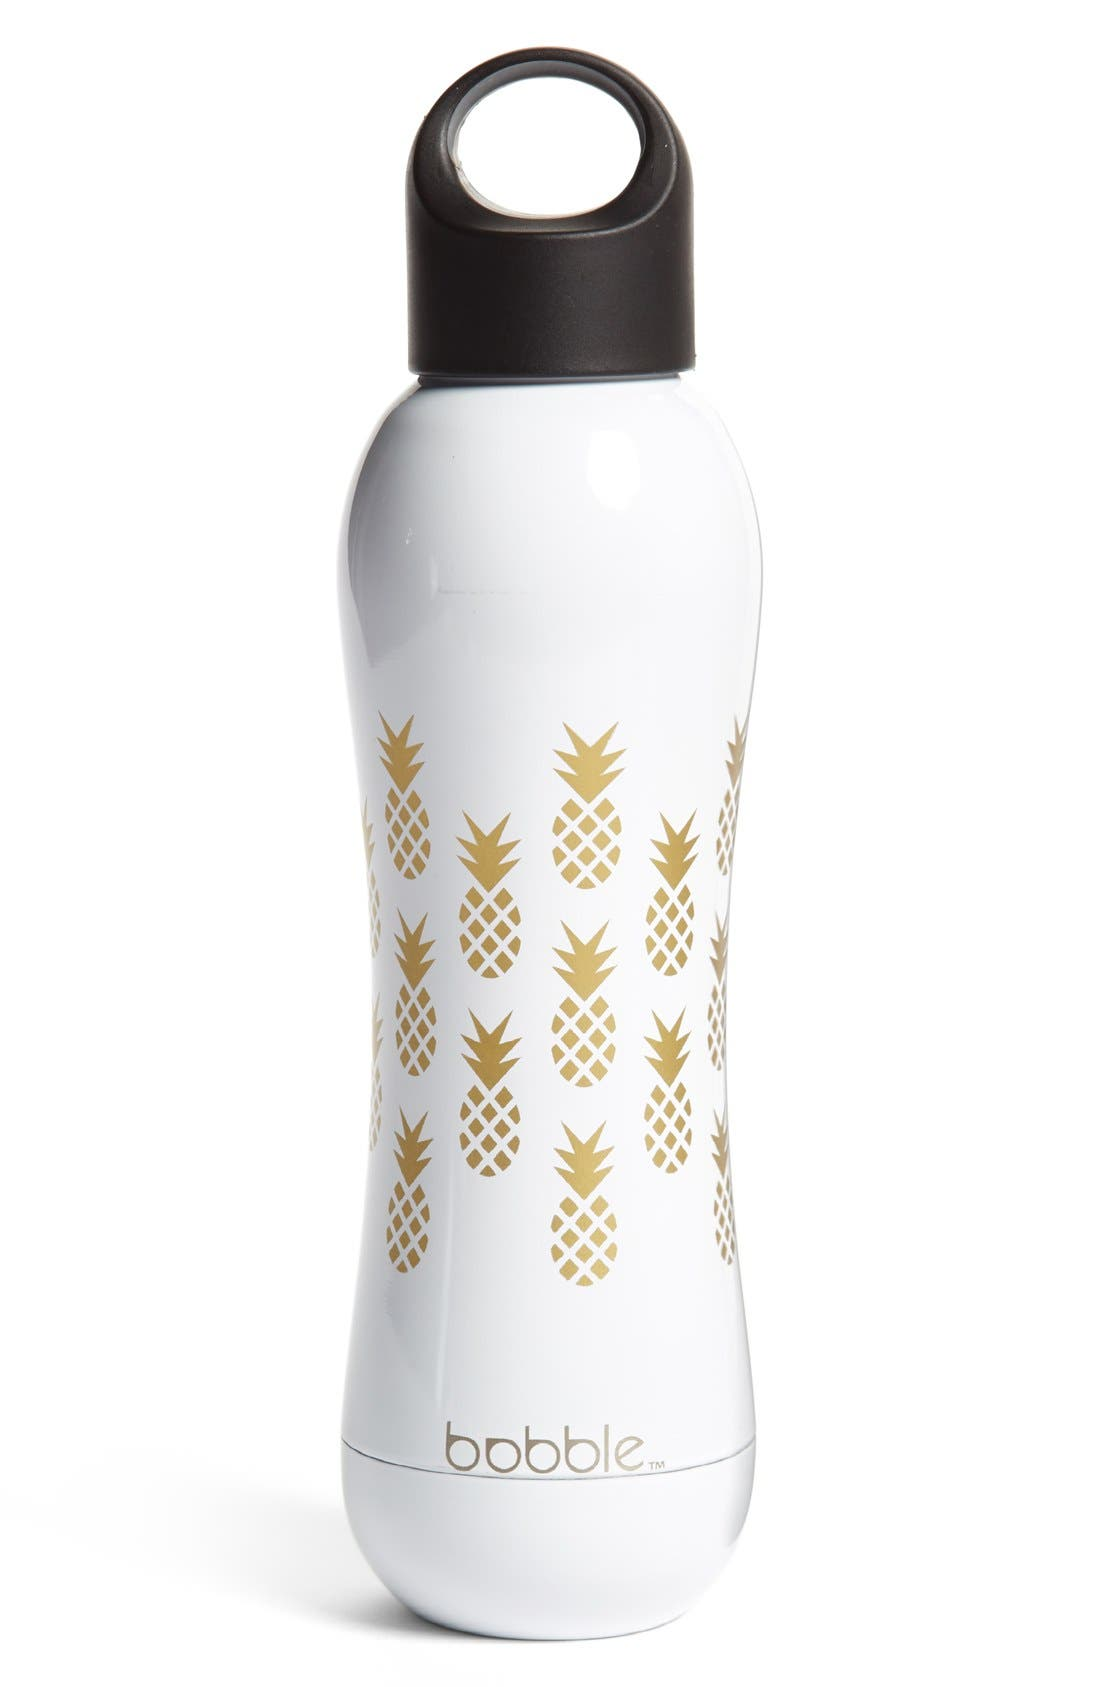 'Pining for You' Stainless Steel Water Bottle,                             Main thumbnail 1, color,                             White